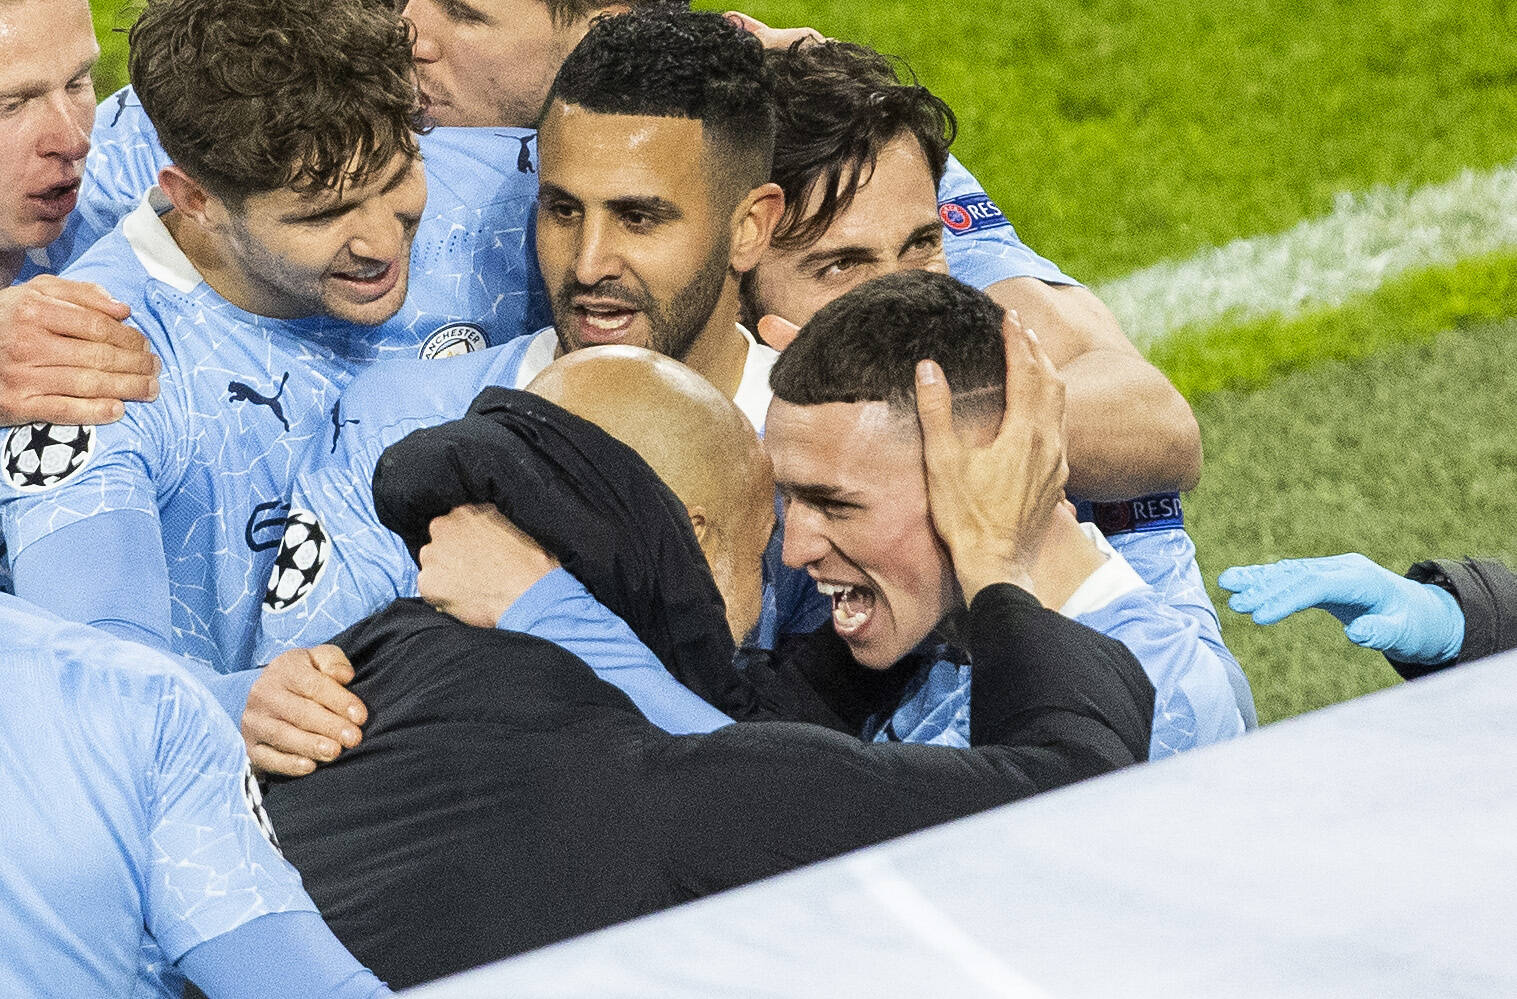 Phil Foden: Pep Guardiola's prodigy becoming one of the world's most exciting talents